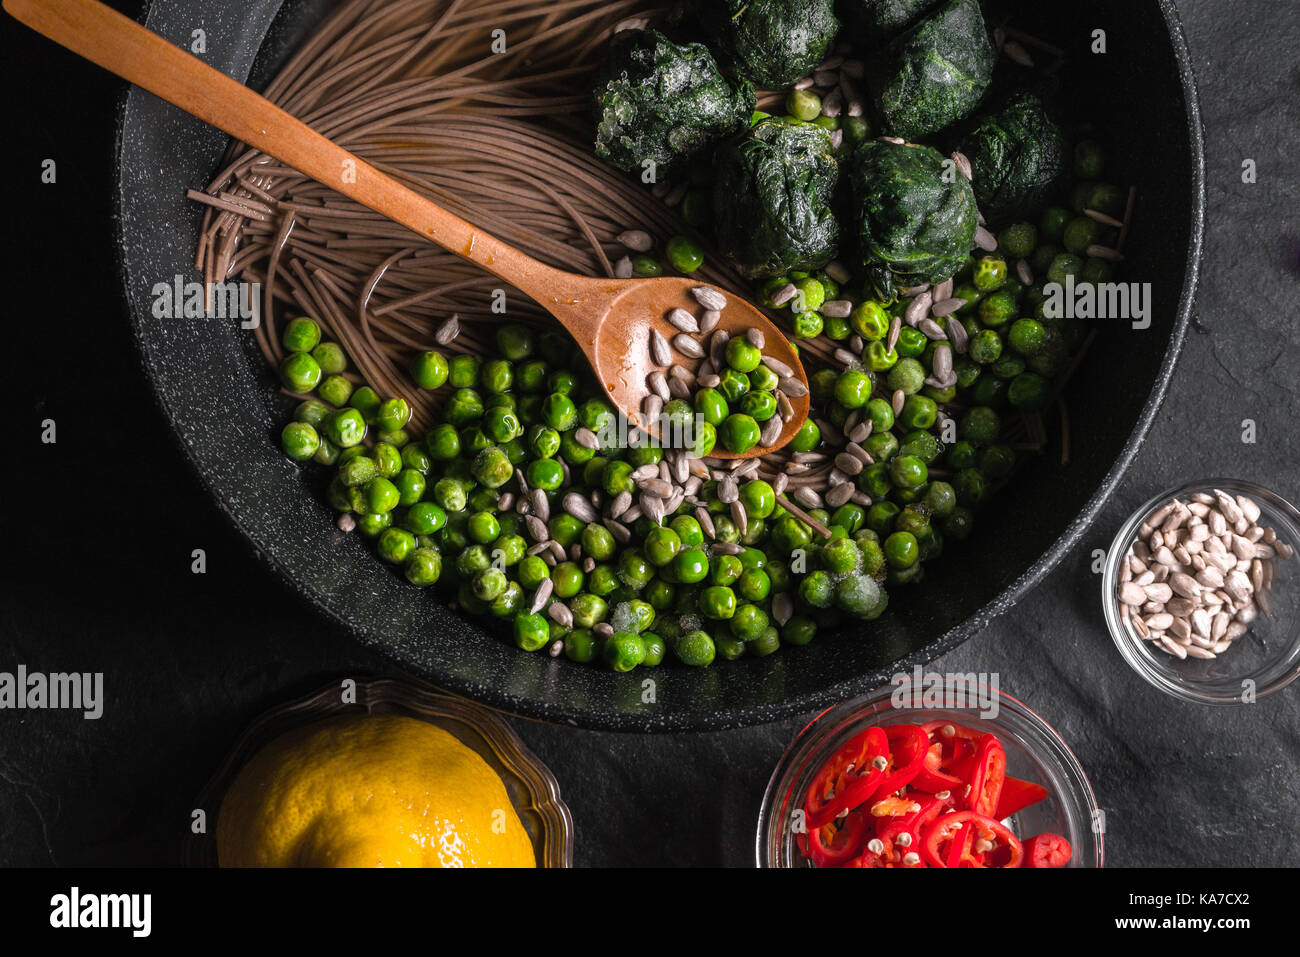 Buckwheat noodles in a frying pan, frozen peas and spinach, chillies and seeds in a bowl horizontal - Stock Image